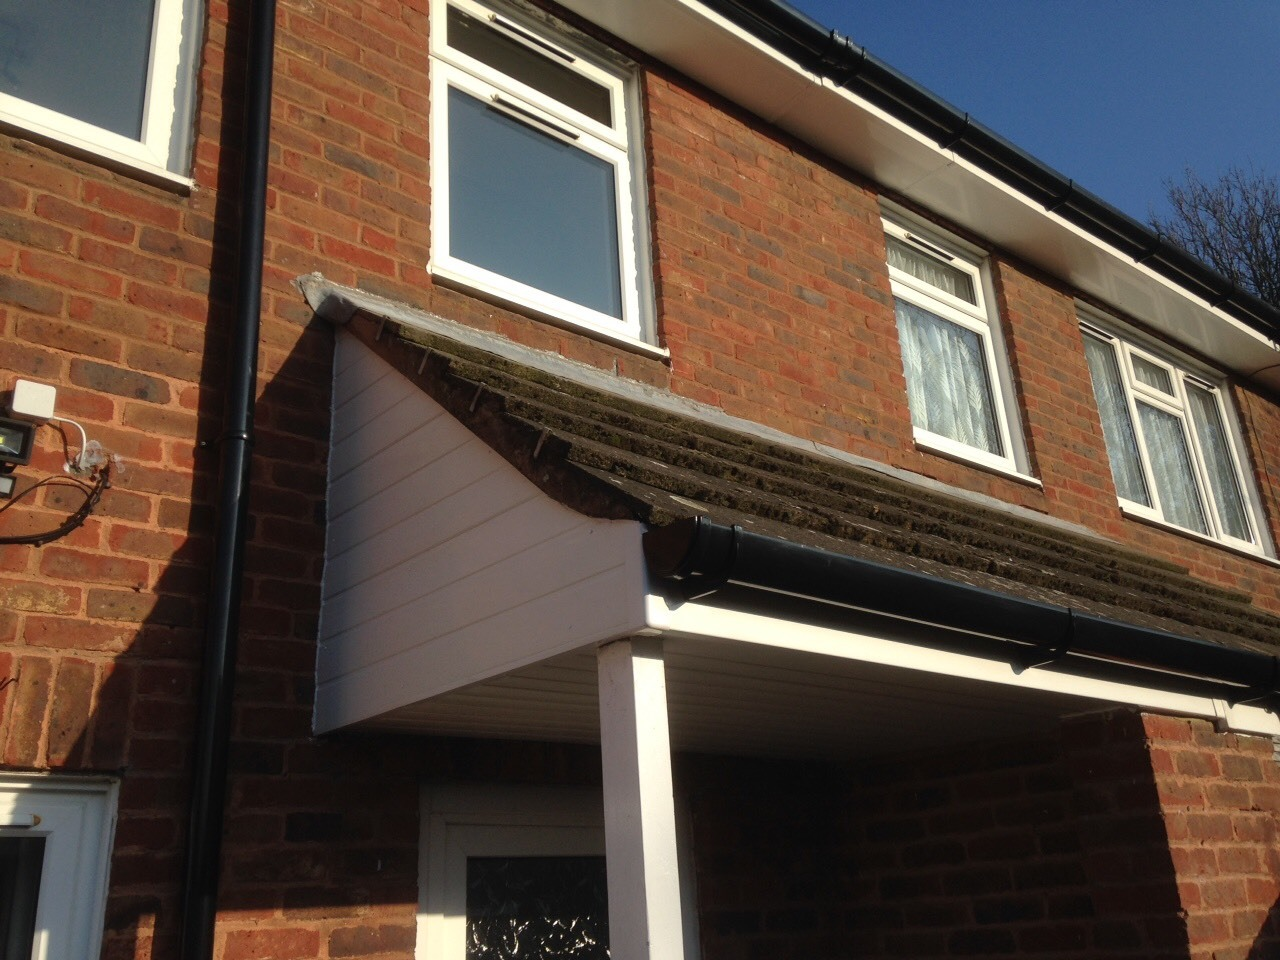 White upvc fascia with black deep flow guttering